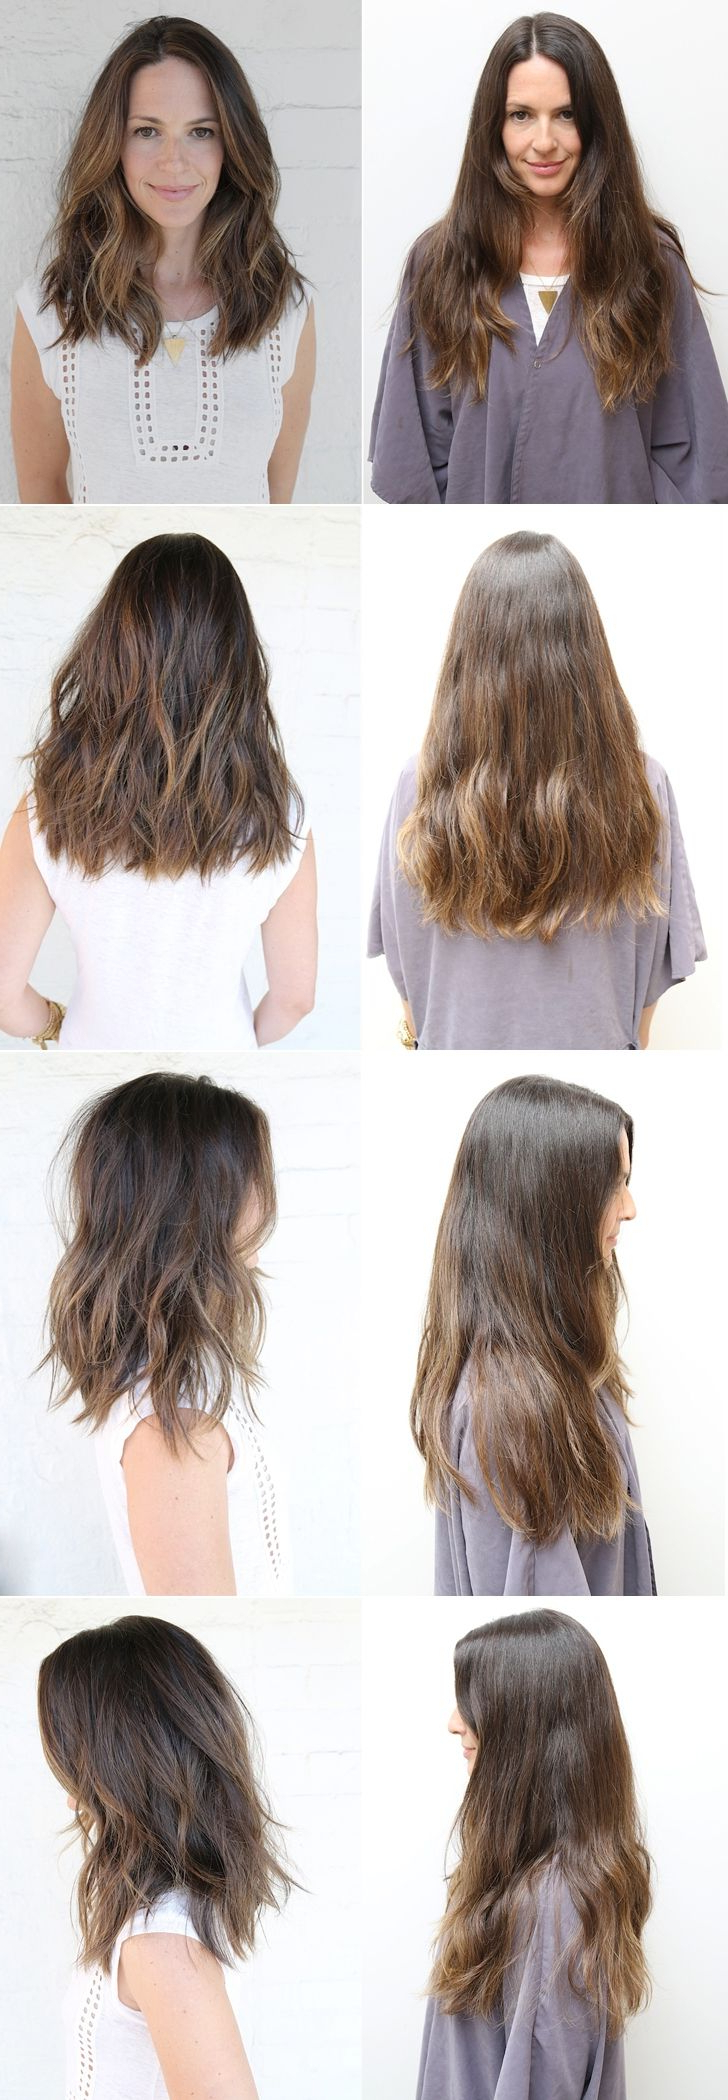 Hair, Hair Cuts, Long Hair Styles Intended For Newest Edgy V Line Layers For Long Hairstyles (View 7 of 20)